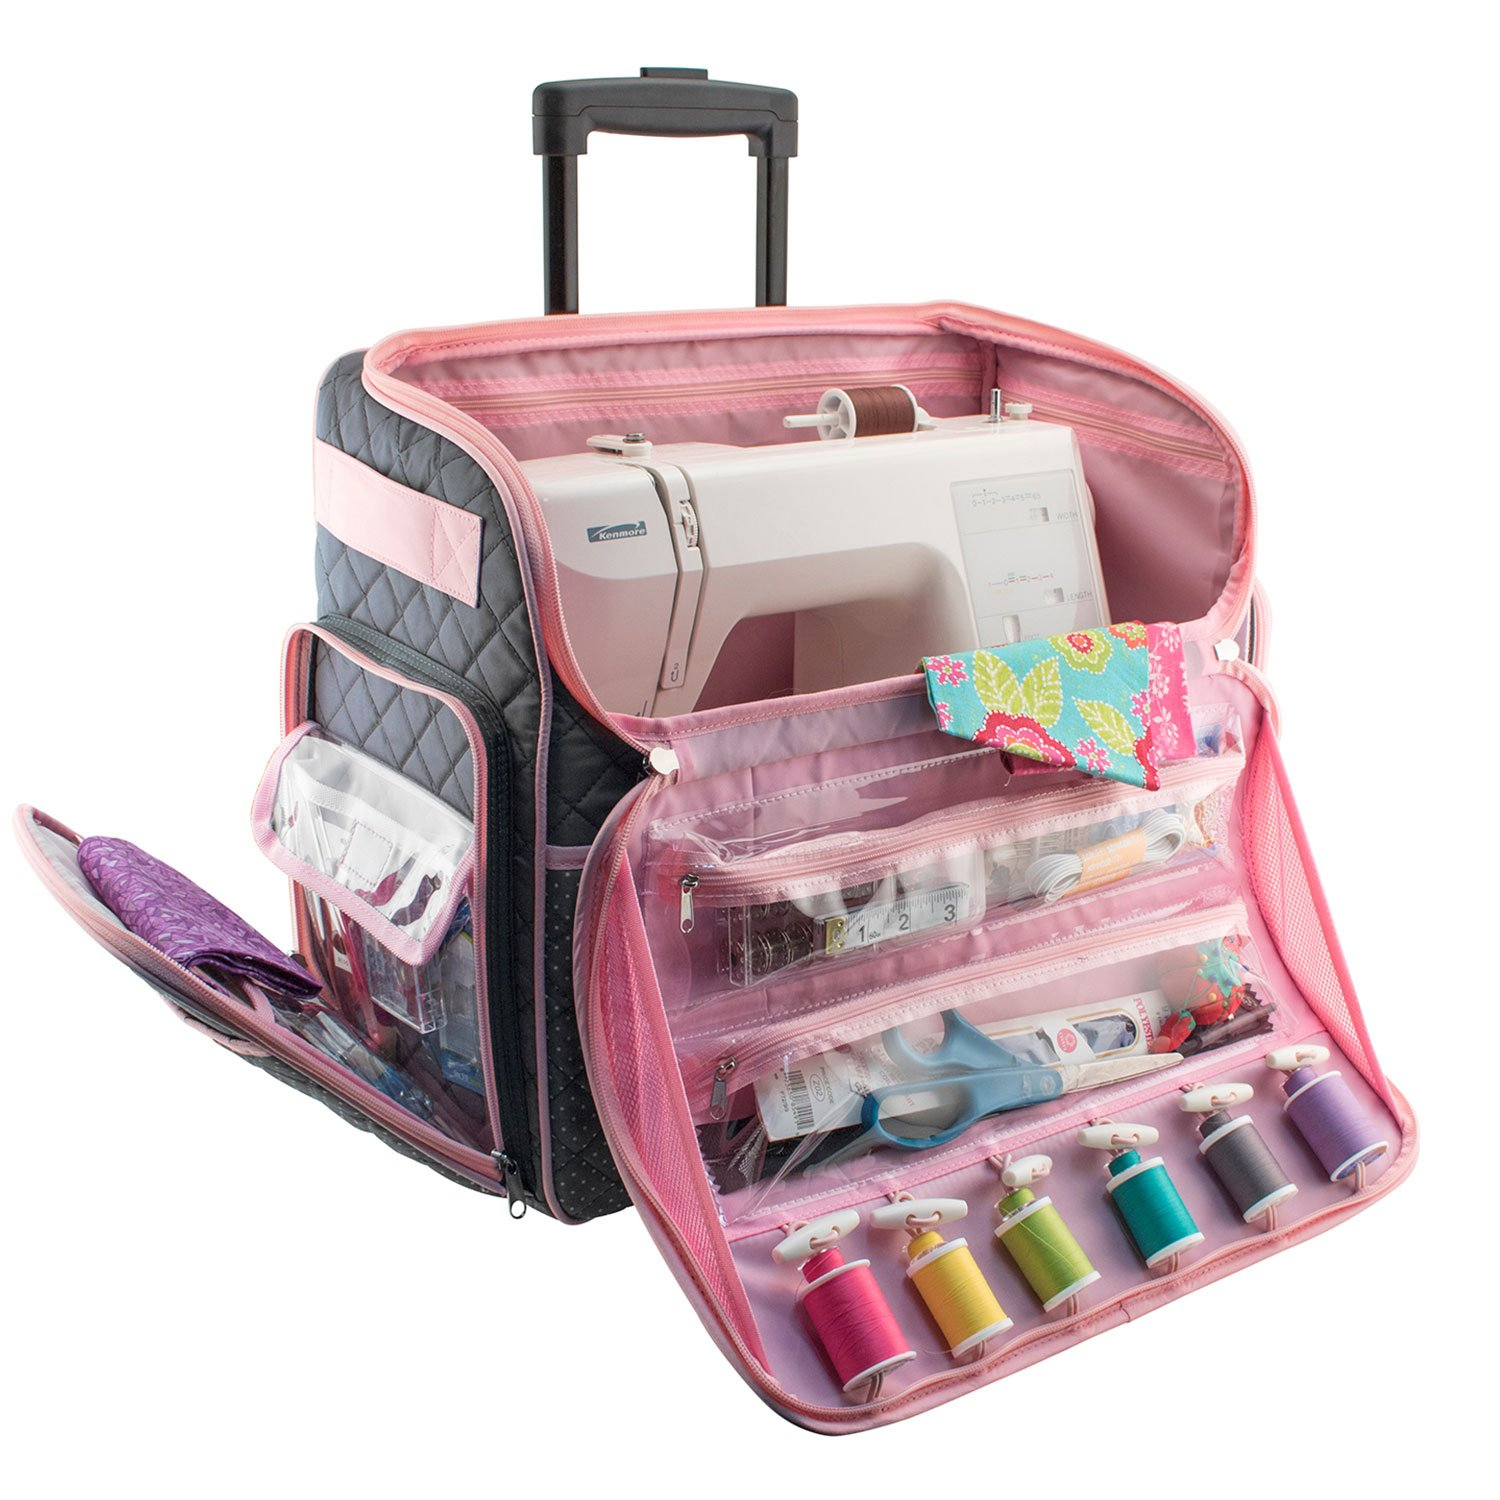 Everything Mary Deluxe Quilted Pink and Grey Rolling Sewing Machine Tote - Sewing Machine Case Fits Most Brother & Singer Sewing Machines, Sewing Bag with Wheels & Handle - Portable Sewing Case EM Design EVM10130-3